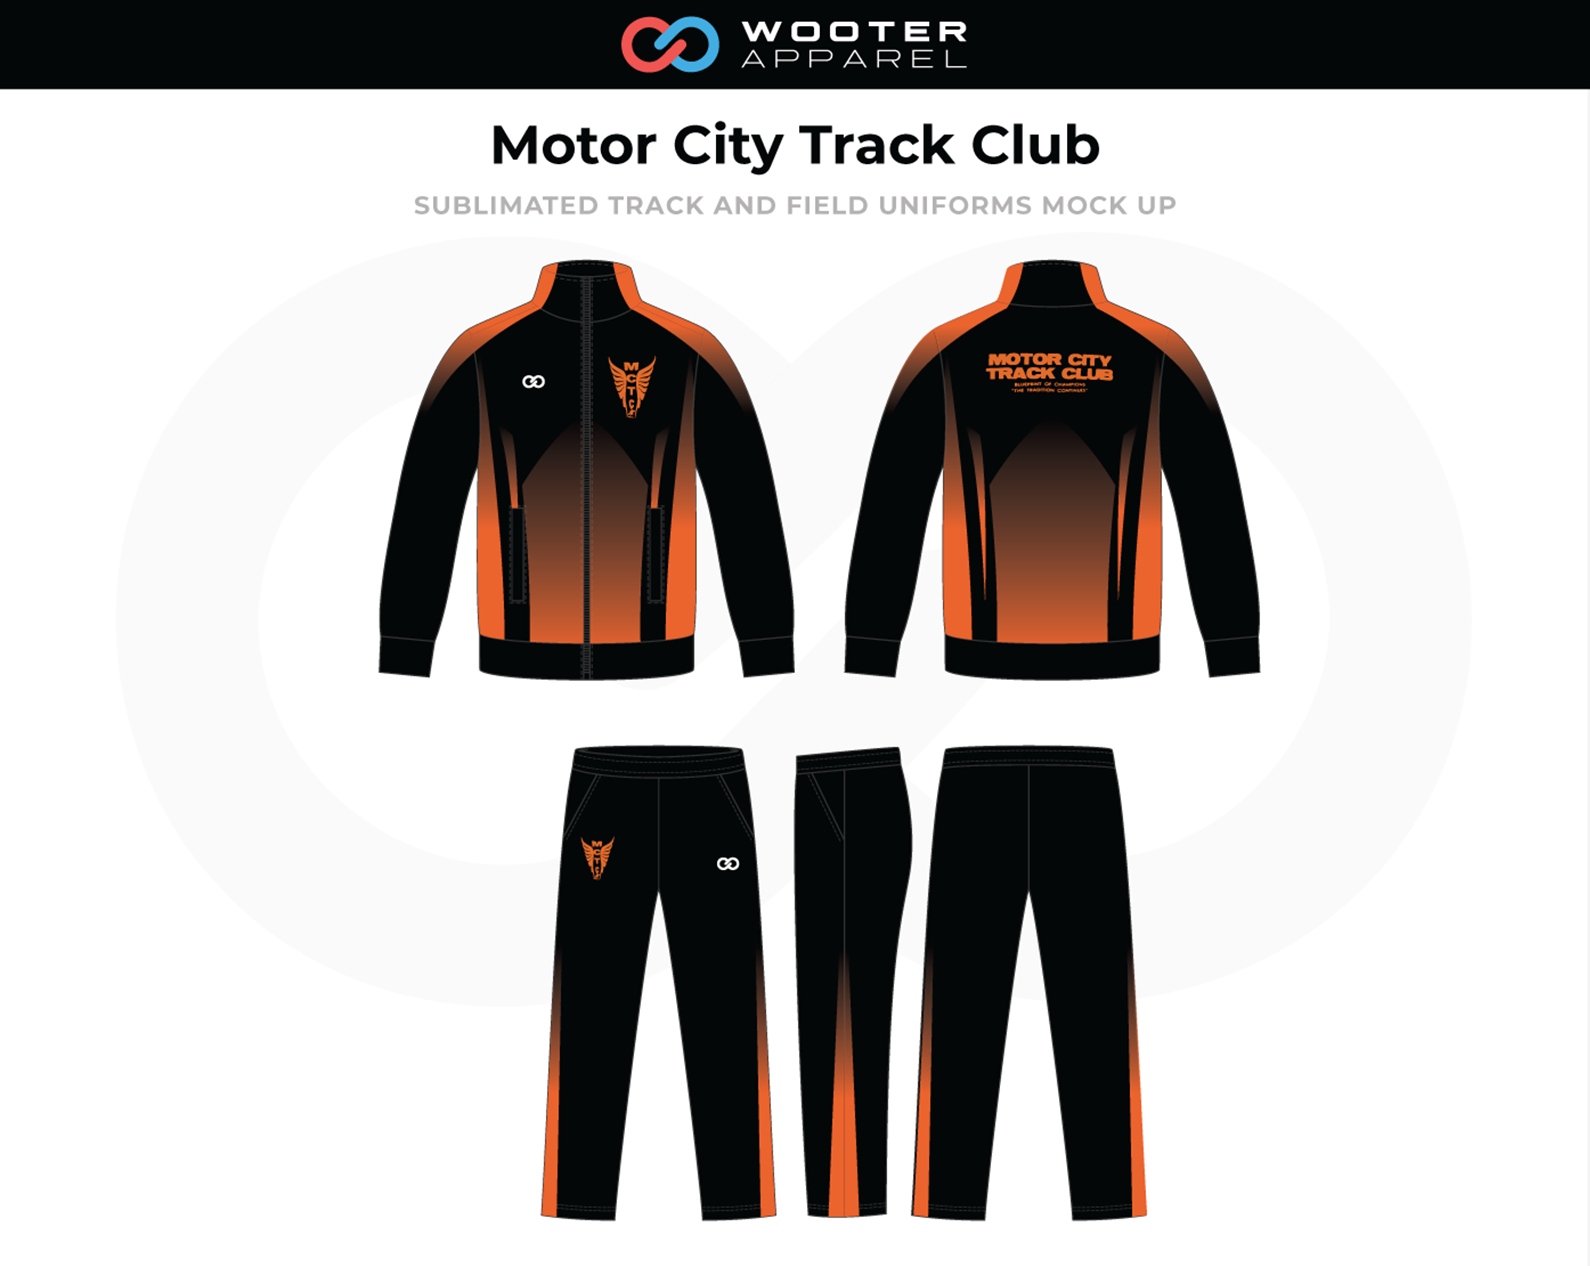 Motor-City-Track-Club-Sublimated-Track-and-Field-Warm-ups_v1_2018.png